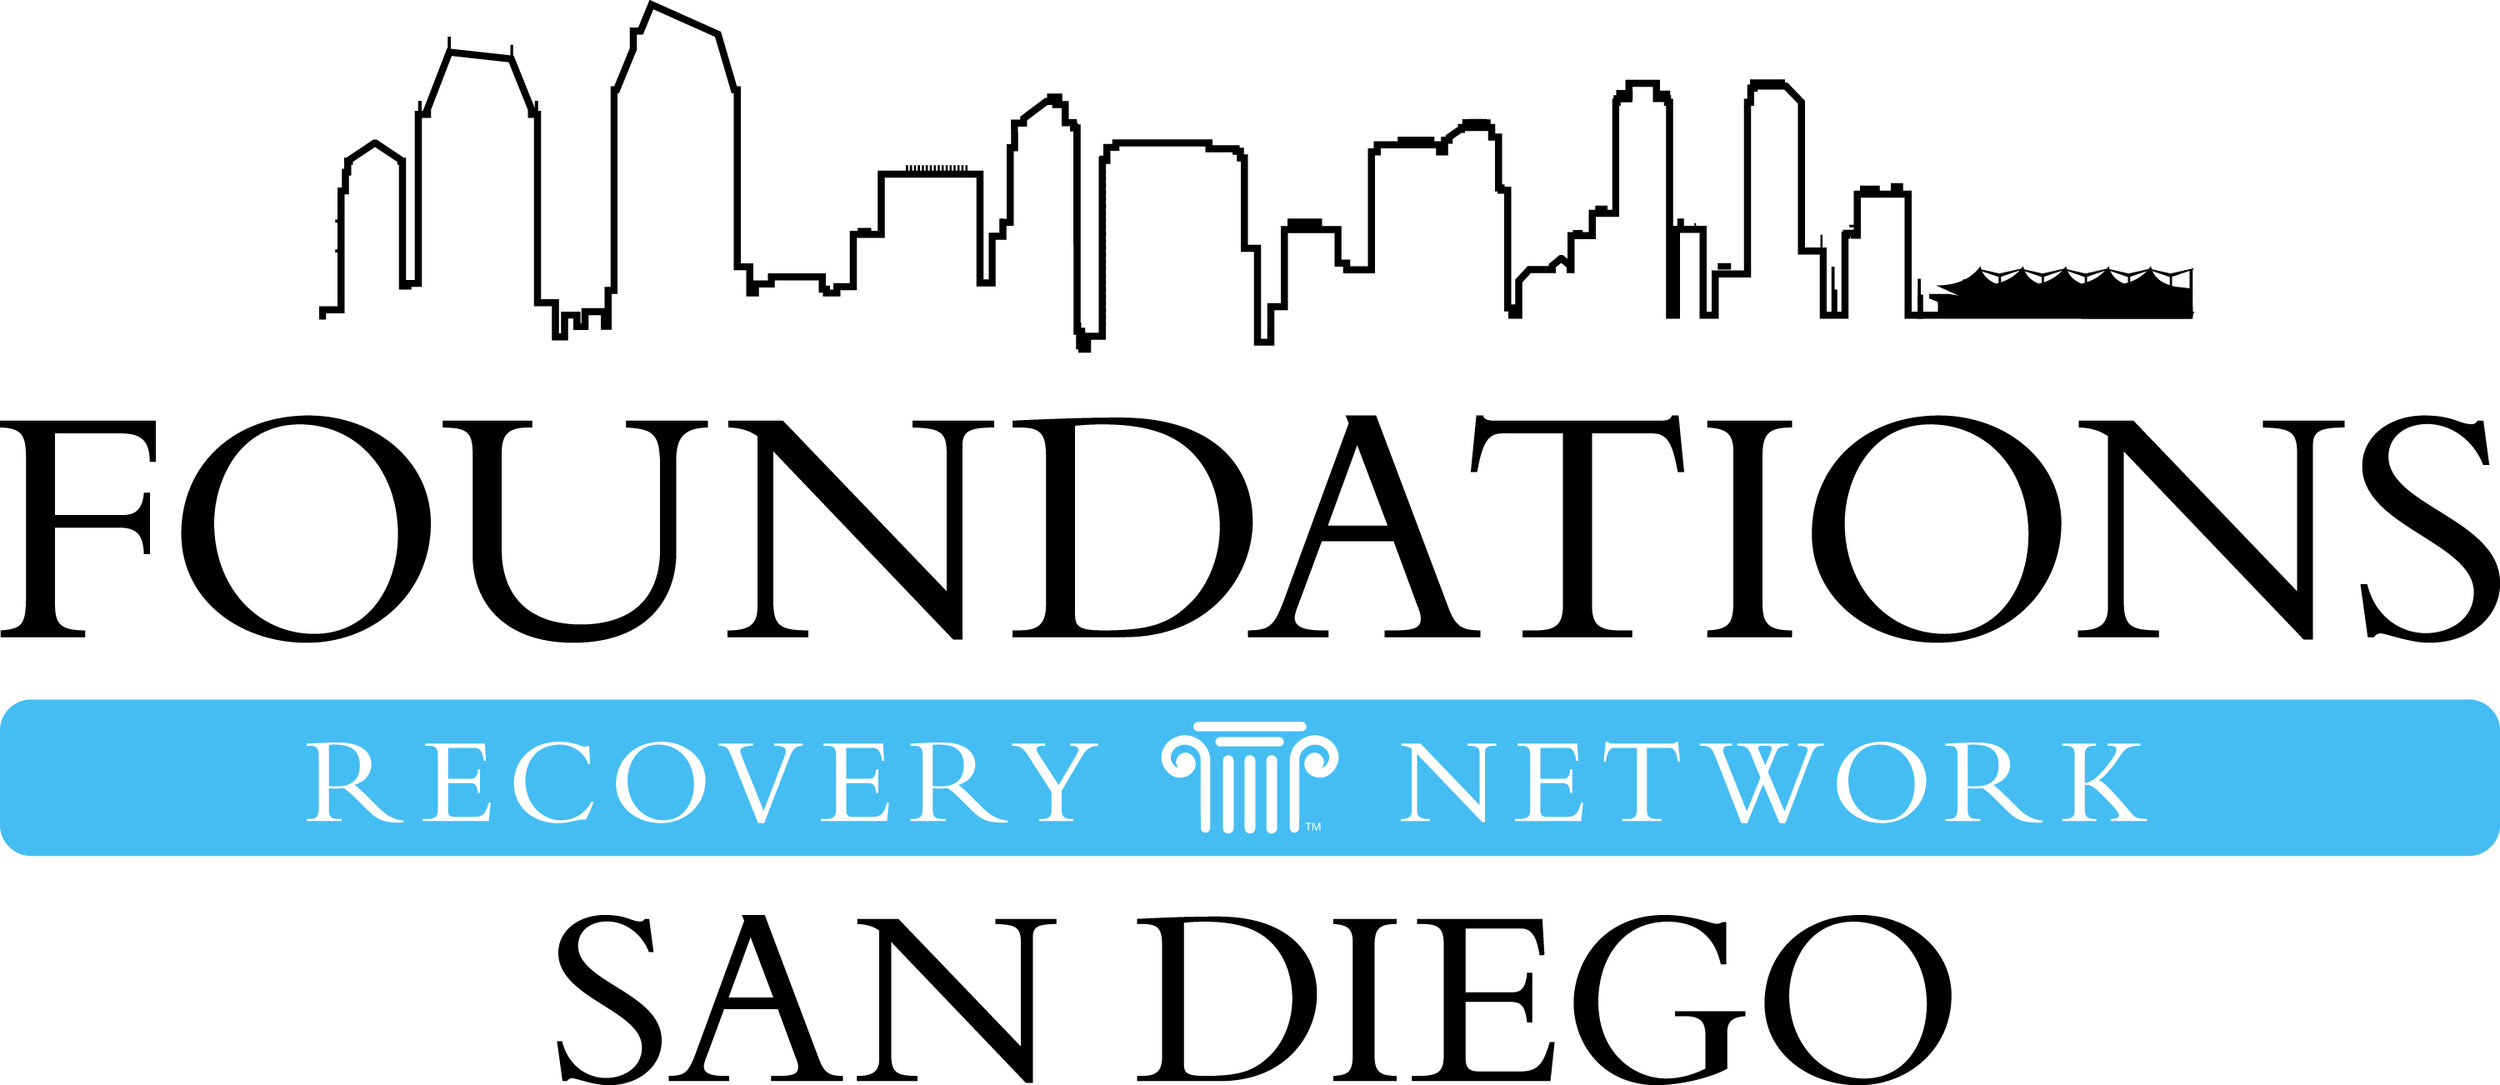 foundations-san-diego-logo.jpg